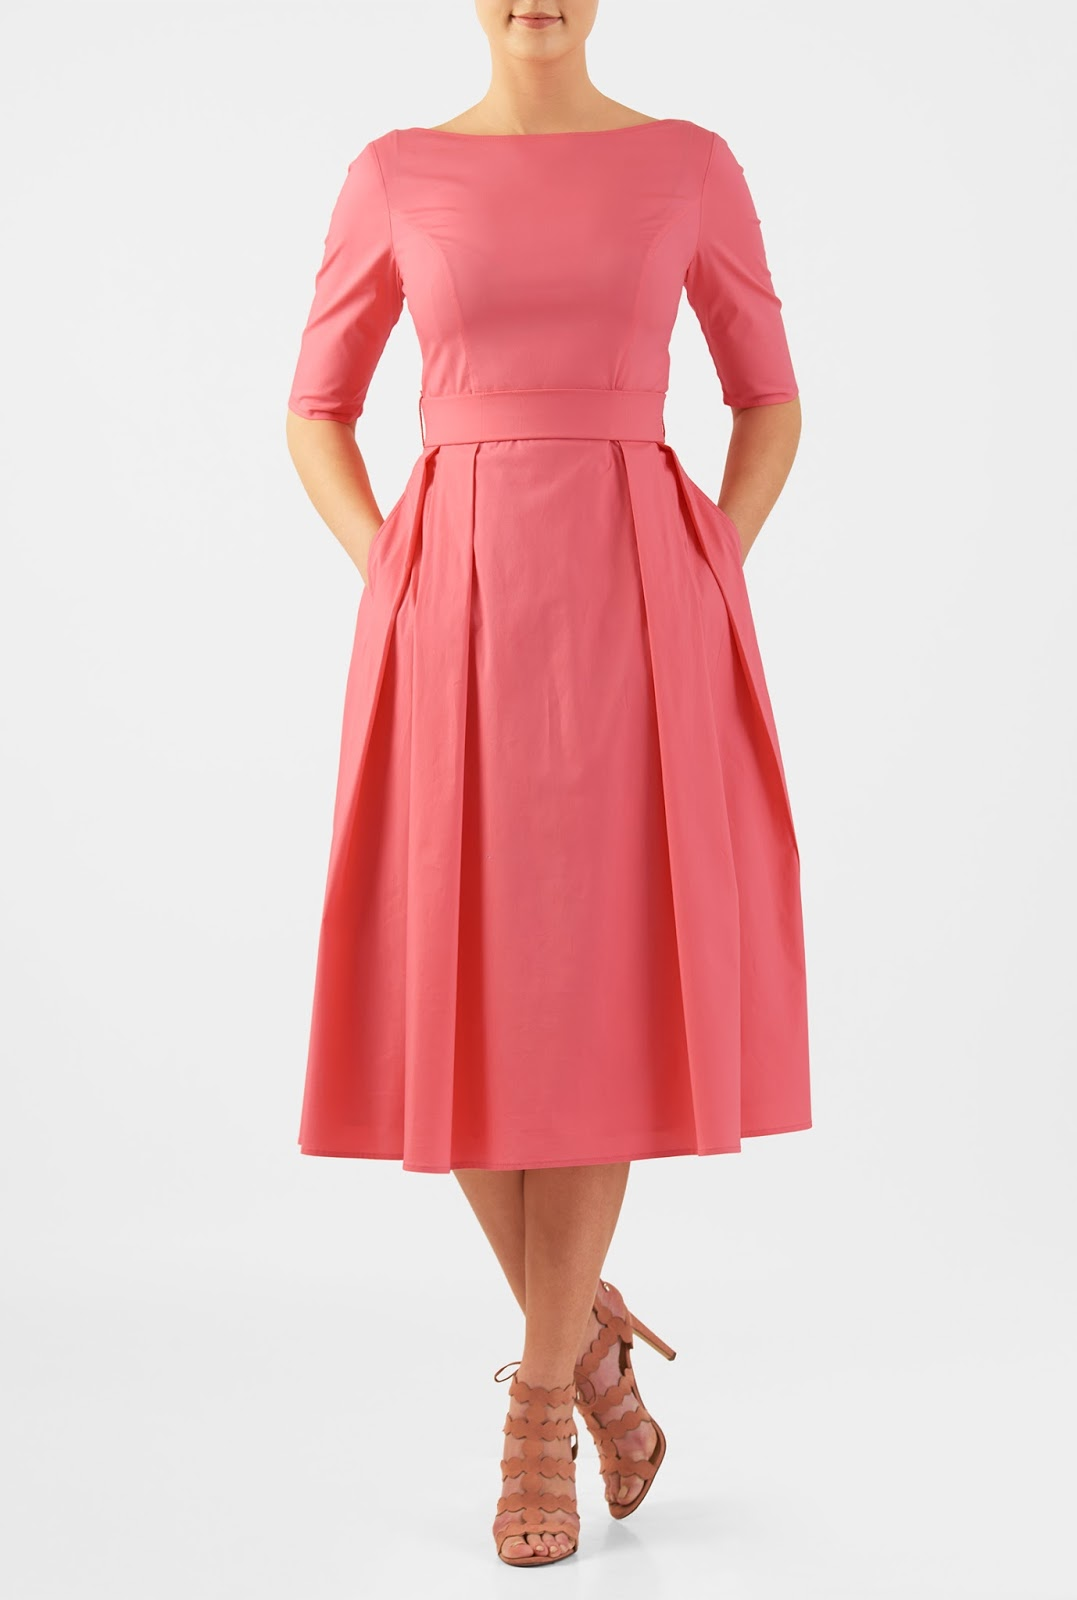 Say yes to the guest dress eshakti quincy dress in sunkist coral ombrellifo Images